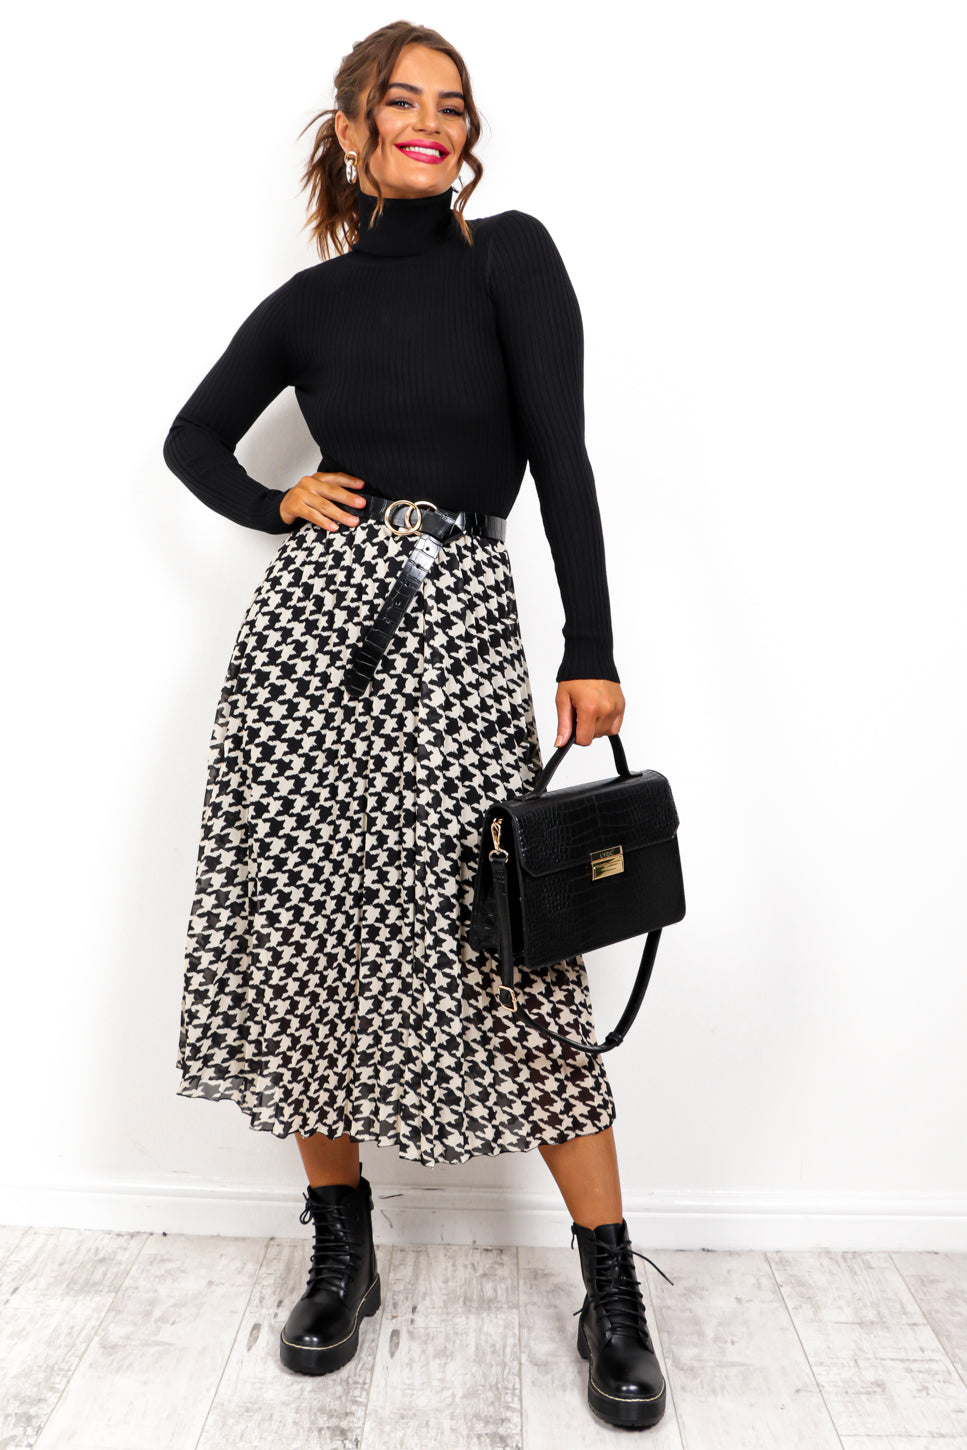 We'll Pleat Again - Black White Houndstooth Midi Skirt